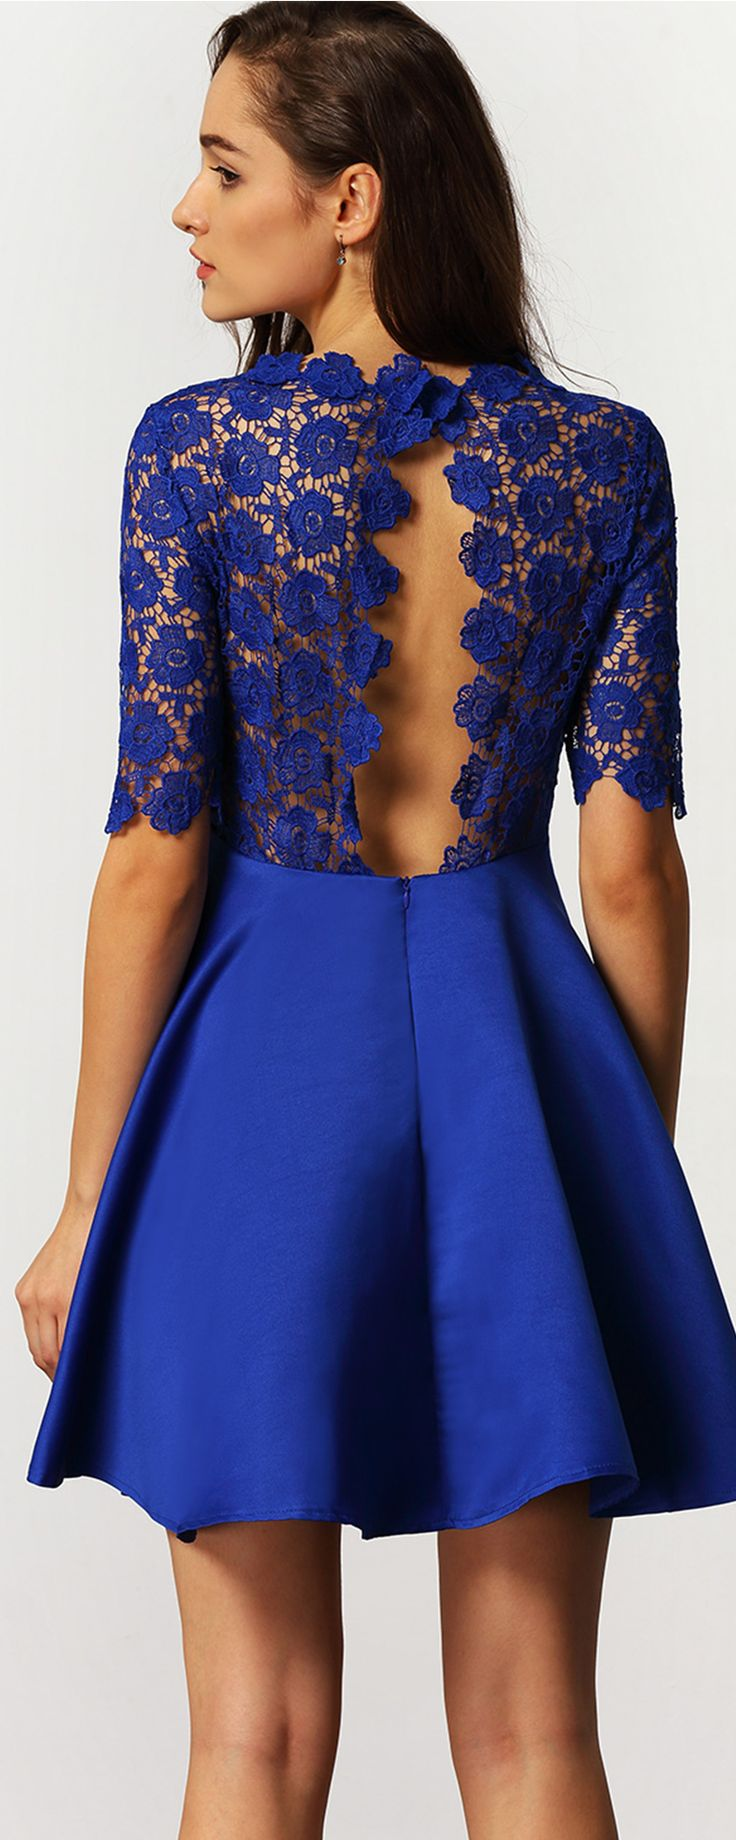 Charming Dresses from shein.com - Blue Half Sleeve Elbow Sleeve Backless Scallop With Lace Flare Dress